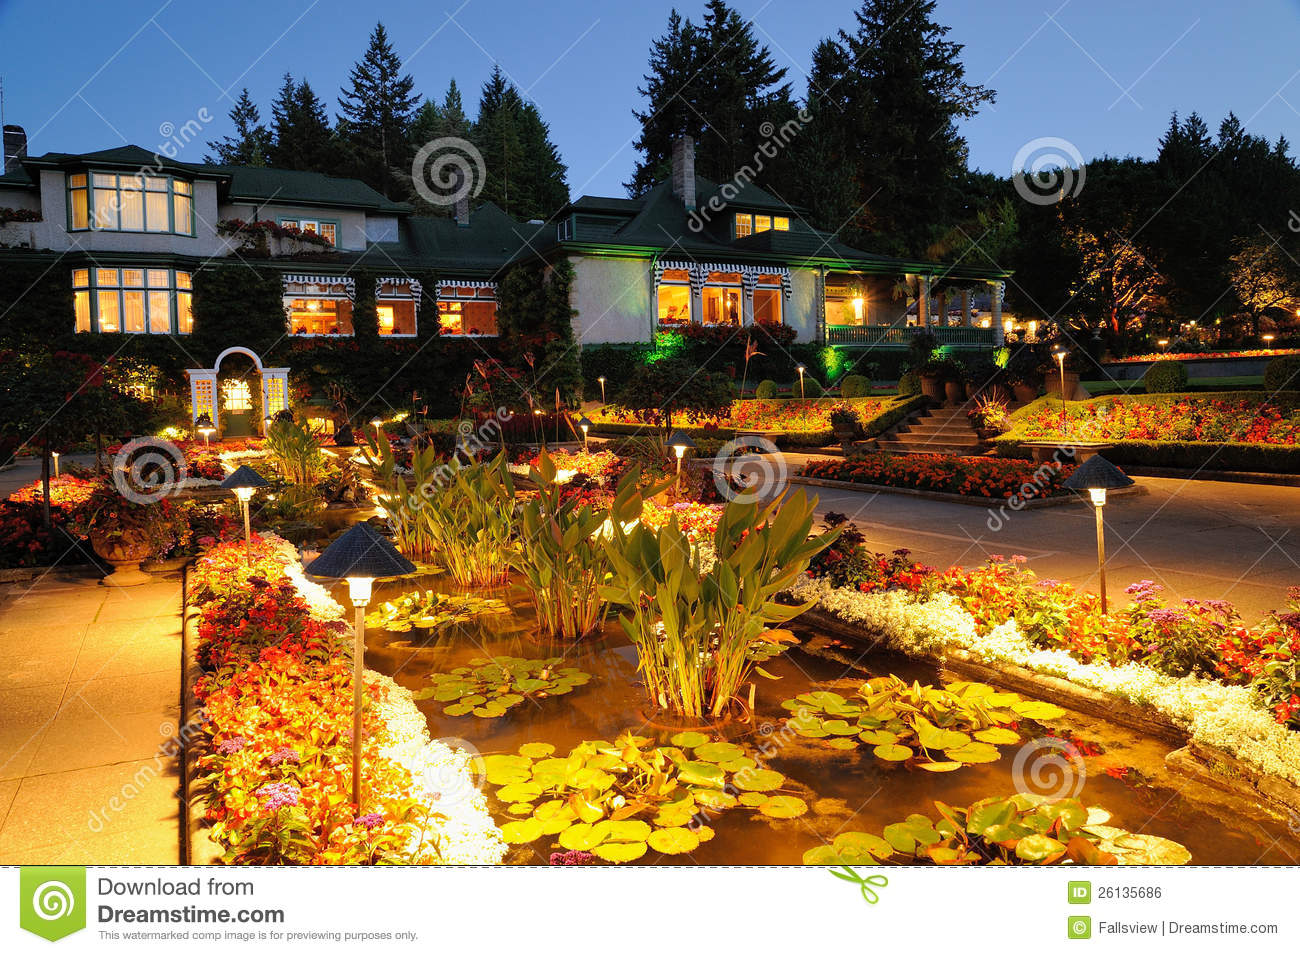 Garden night scene stock photo. Image of butchart, historical - 26135686